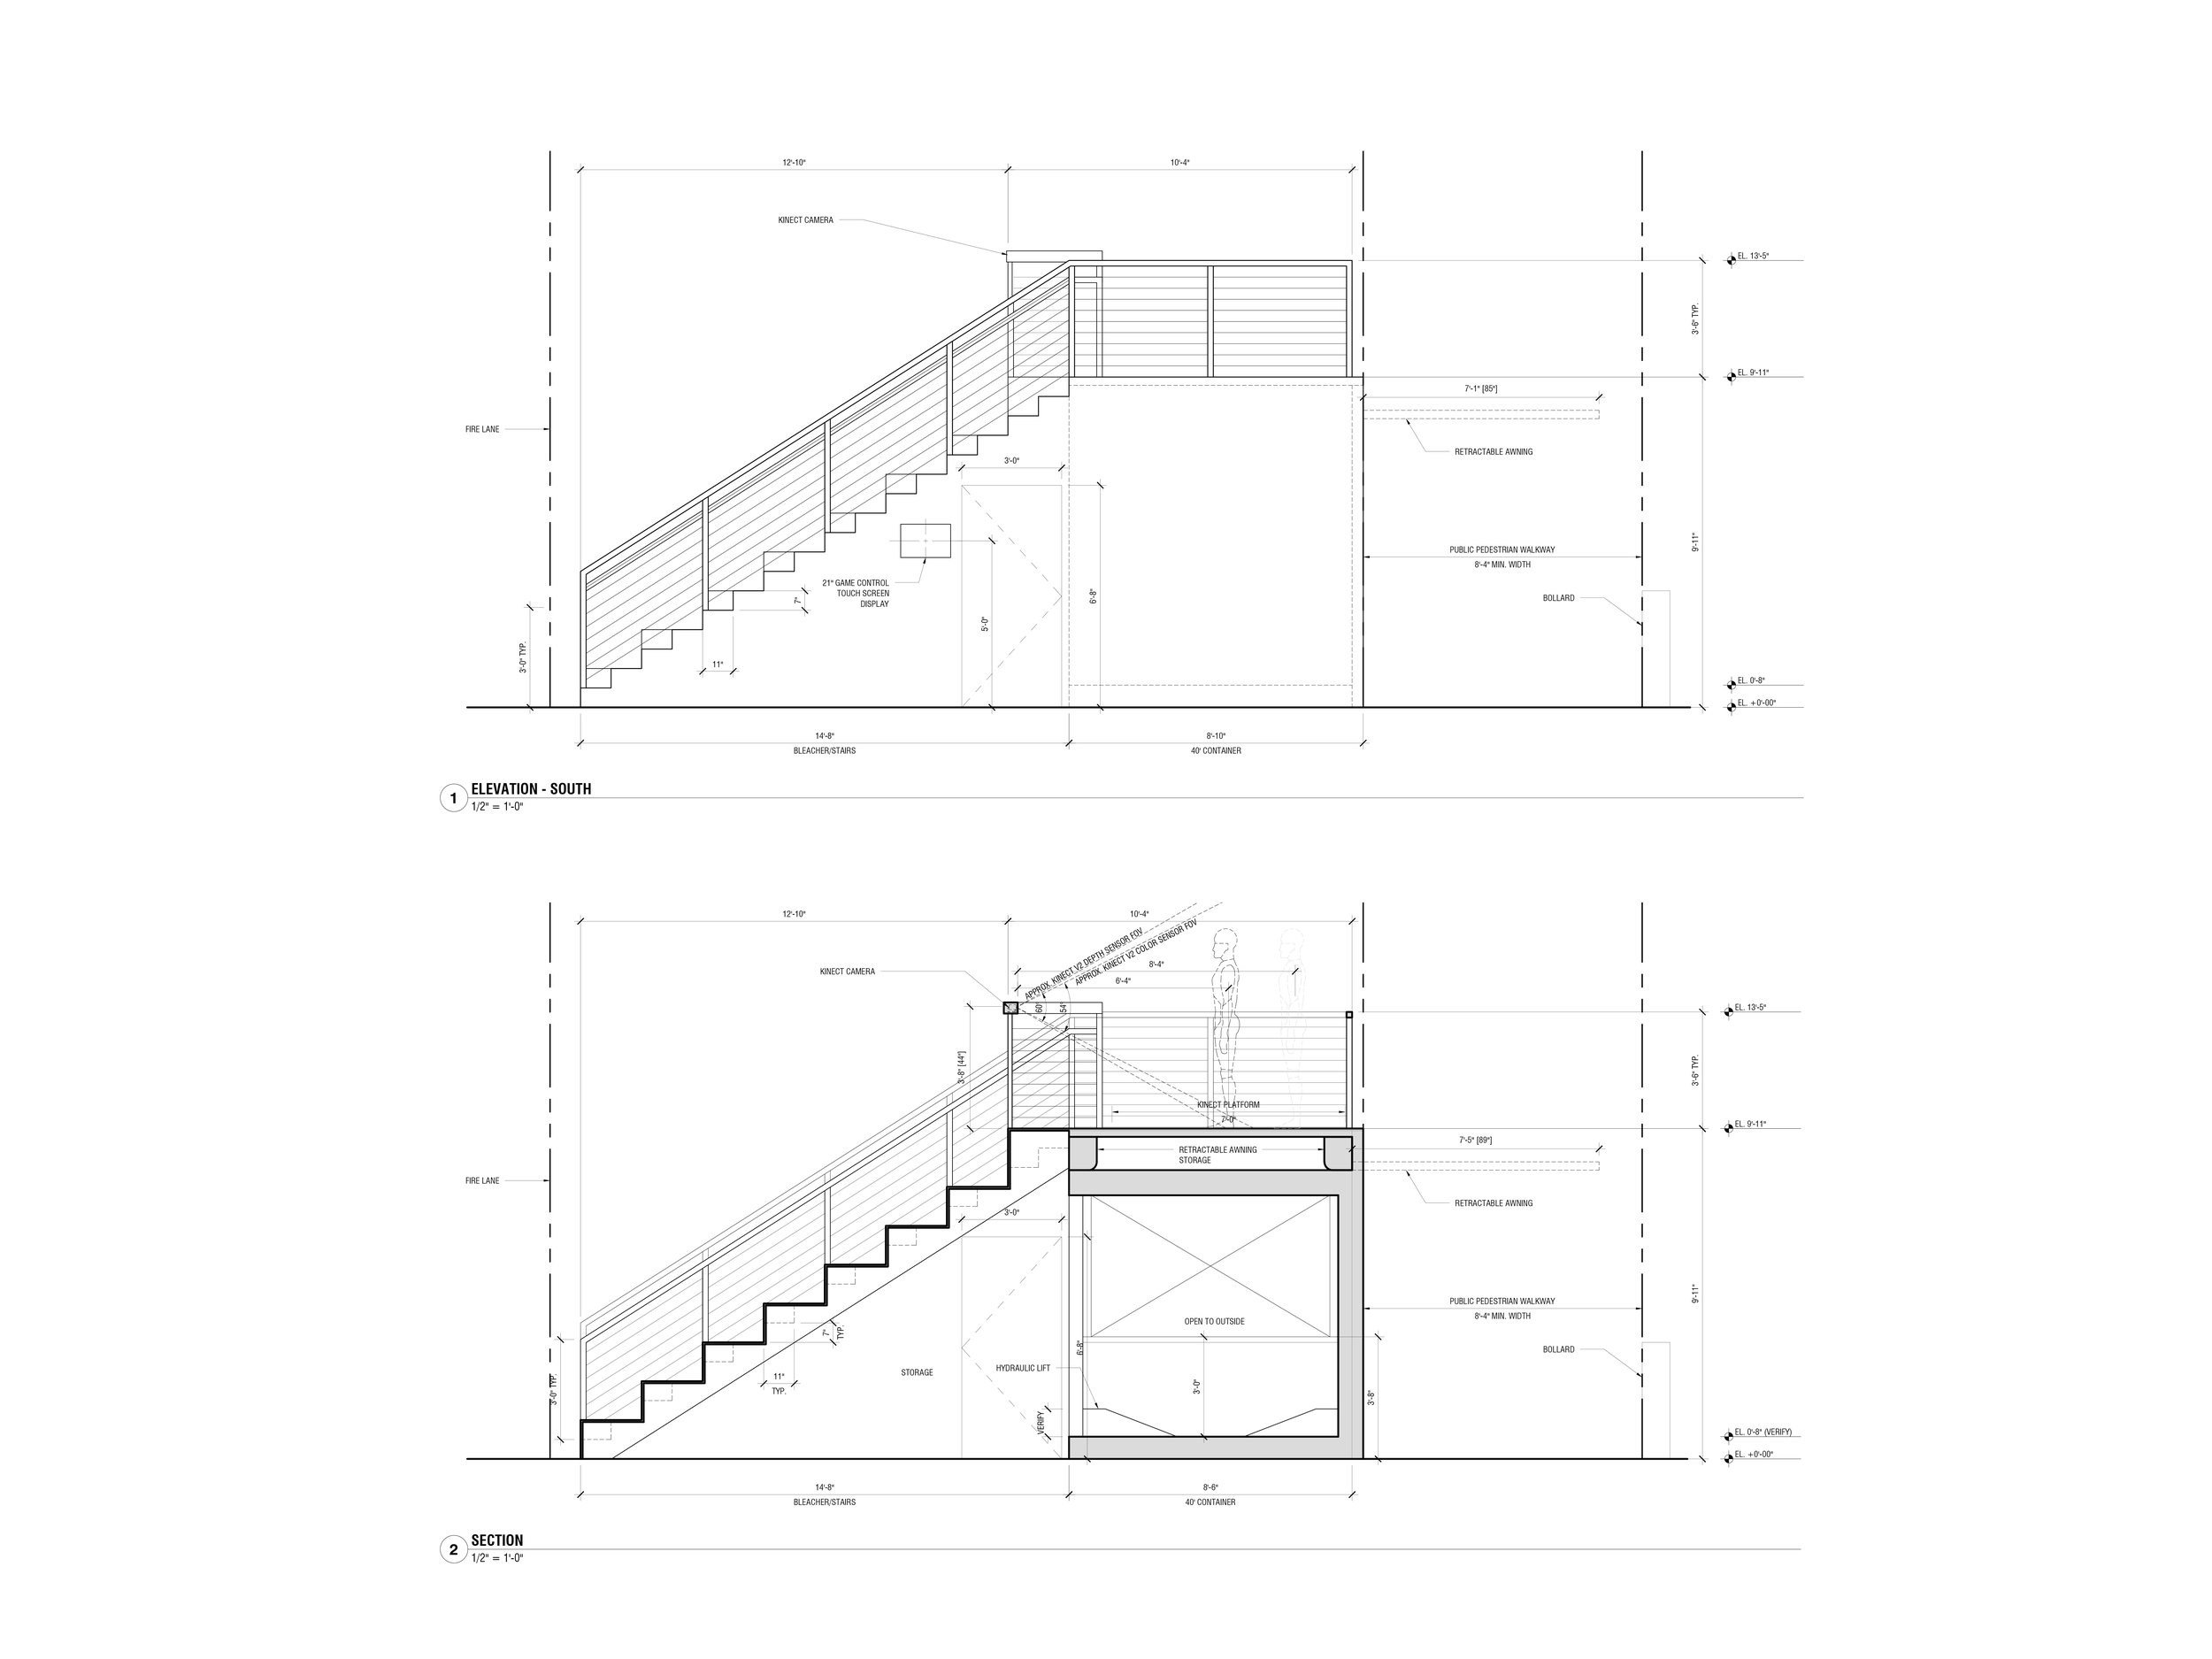 Elevation and Section